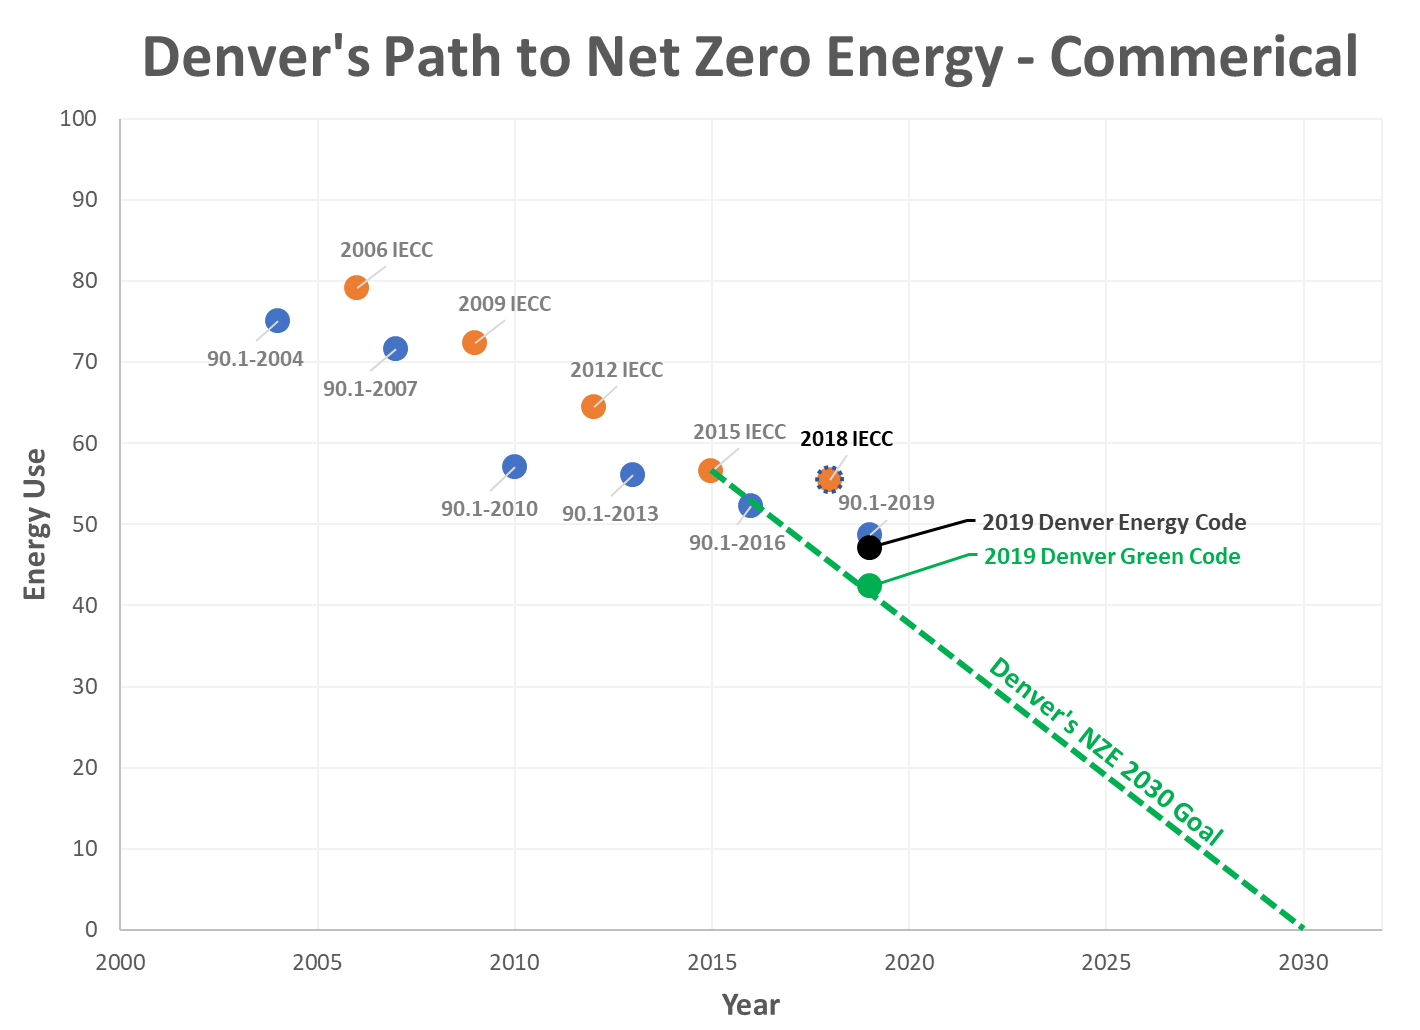 Graph of Denver's Path to NZE - Commercial